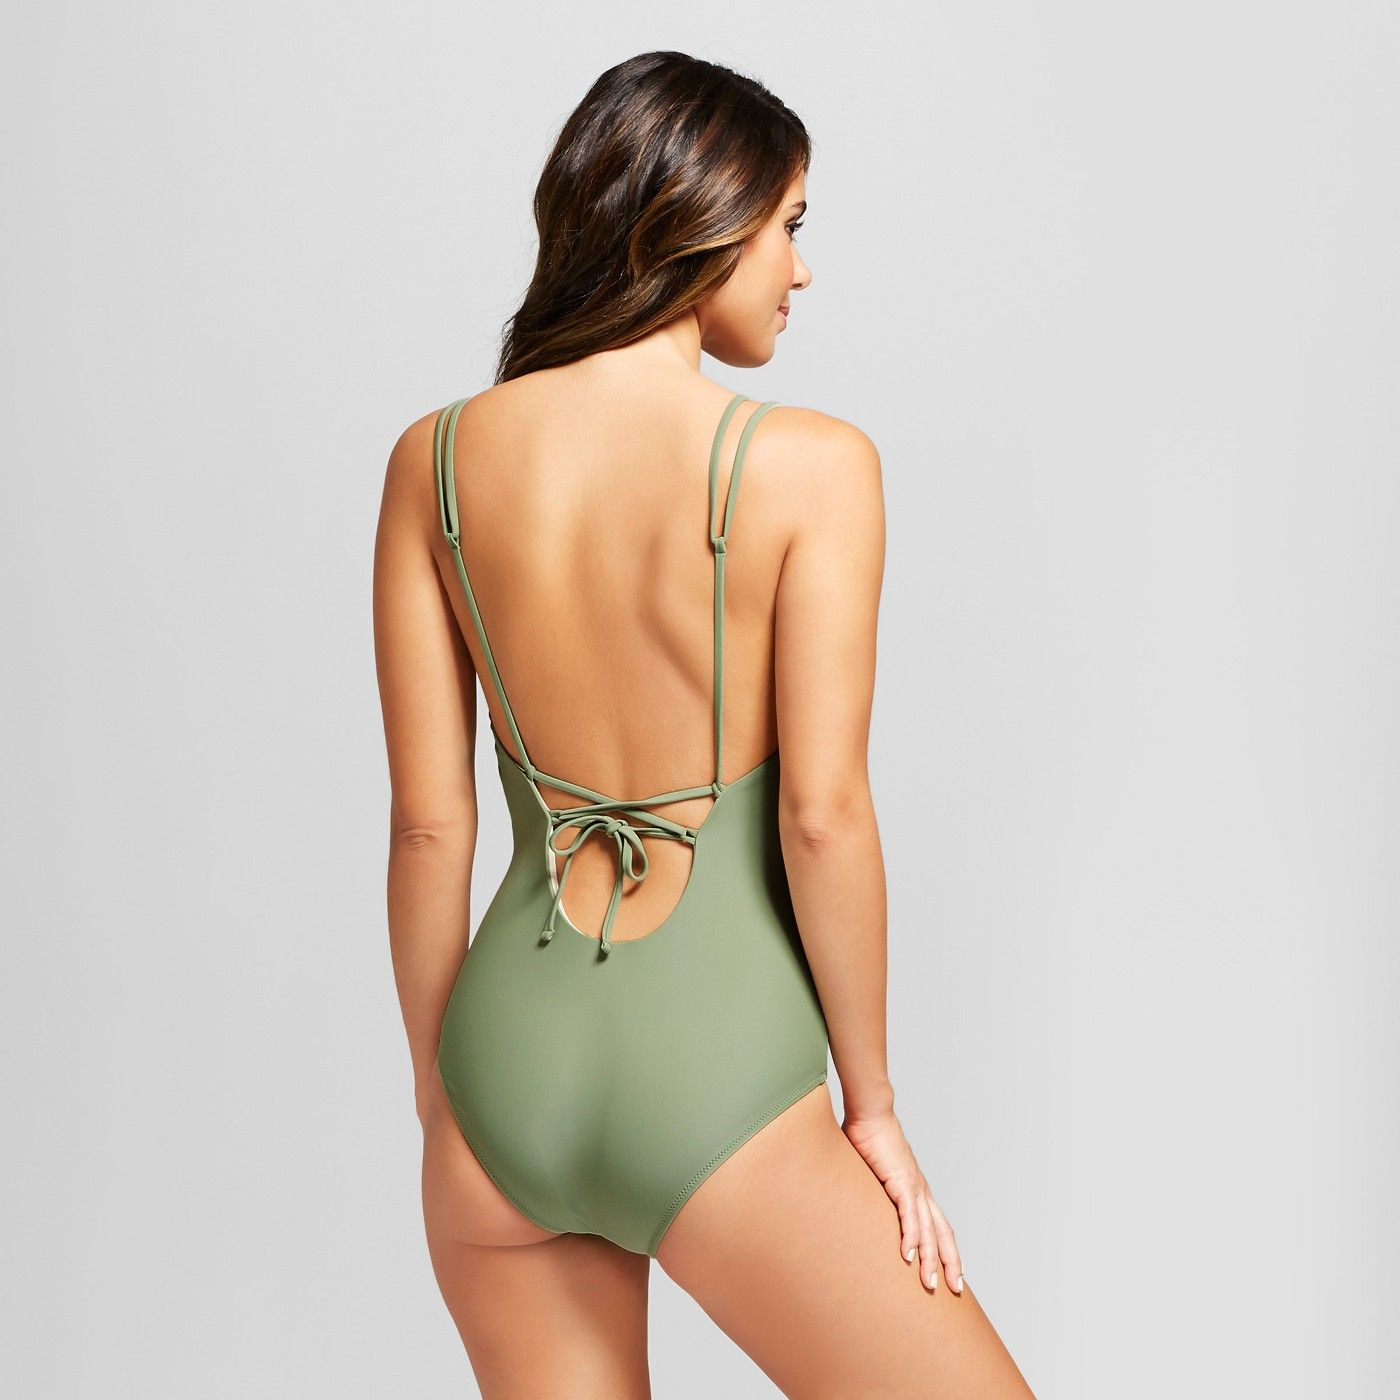 c378c616159 Vanilla Beach Women's Strappy Cheeky Lace-Up One Piece Swimsuit - Olive  Heather S #Strappy, #Cheeky, #Women